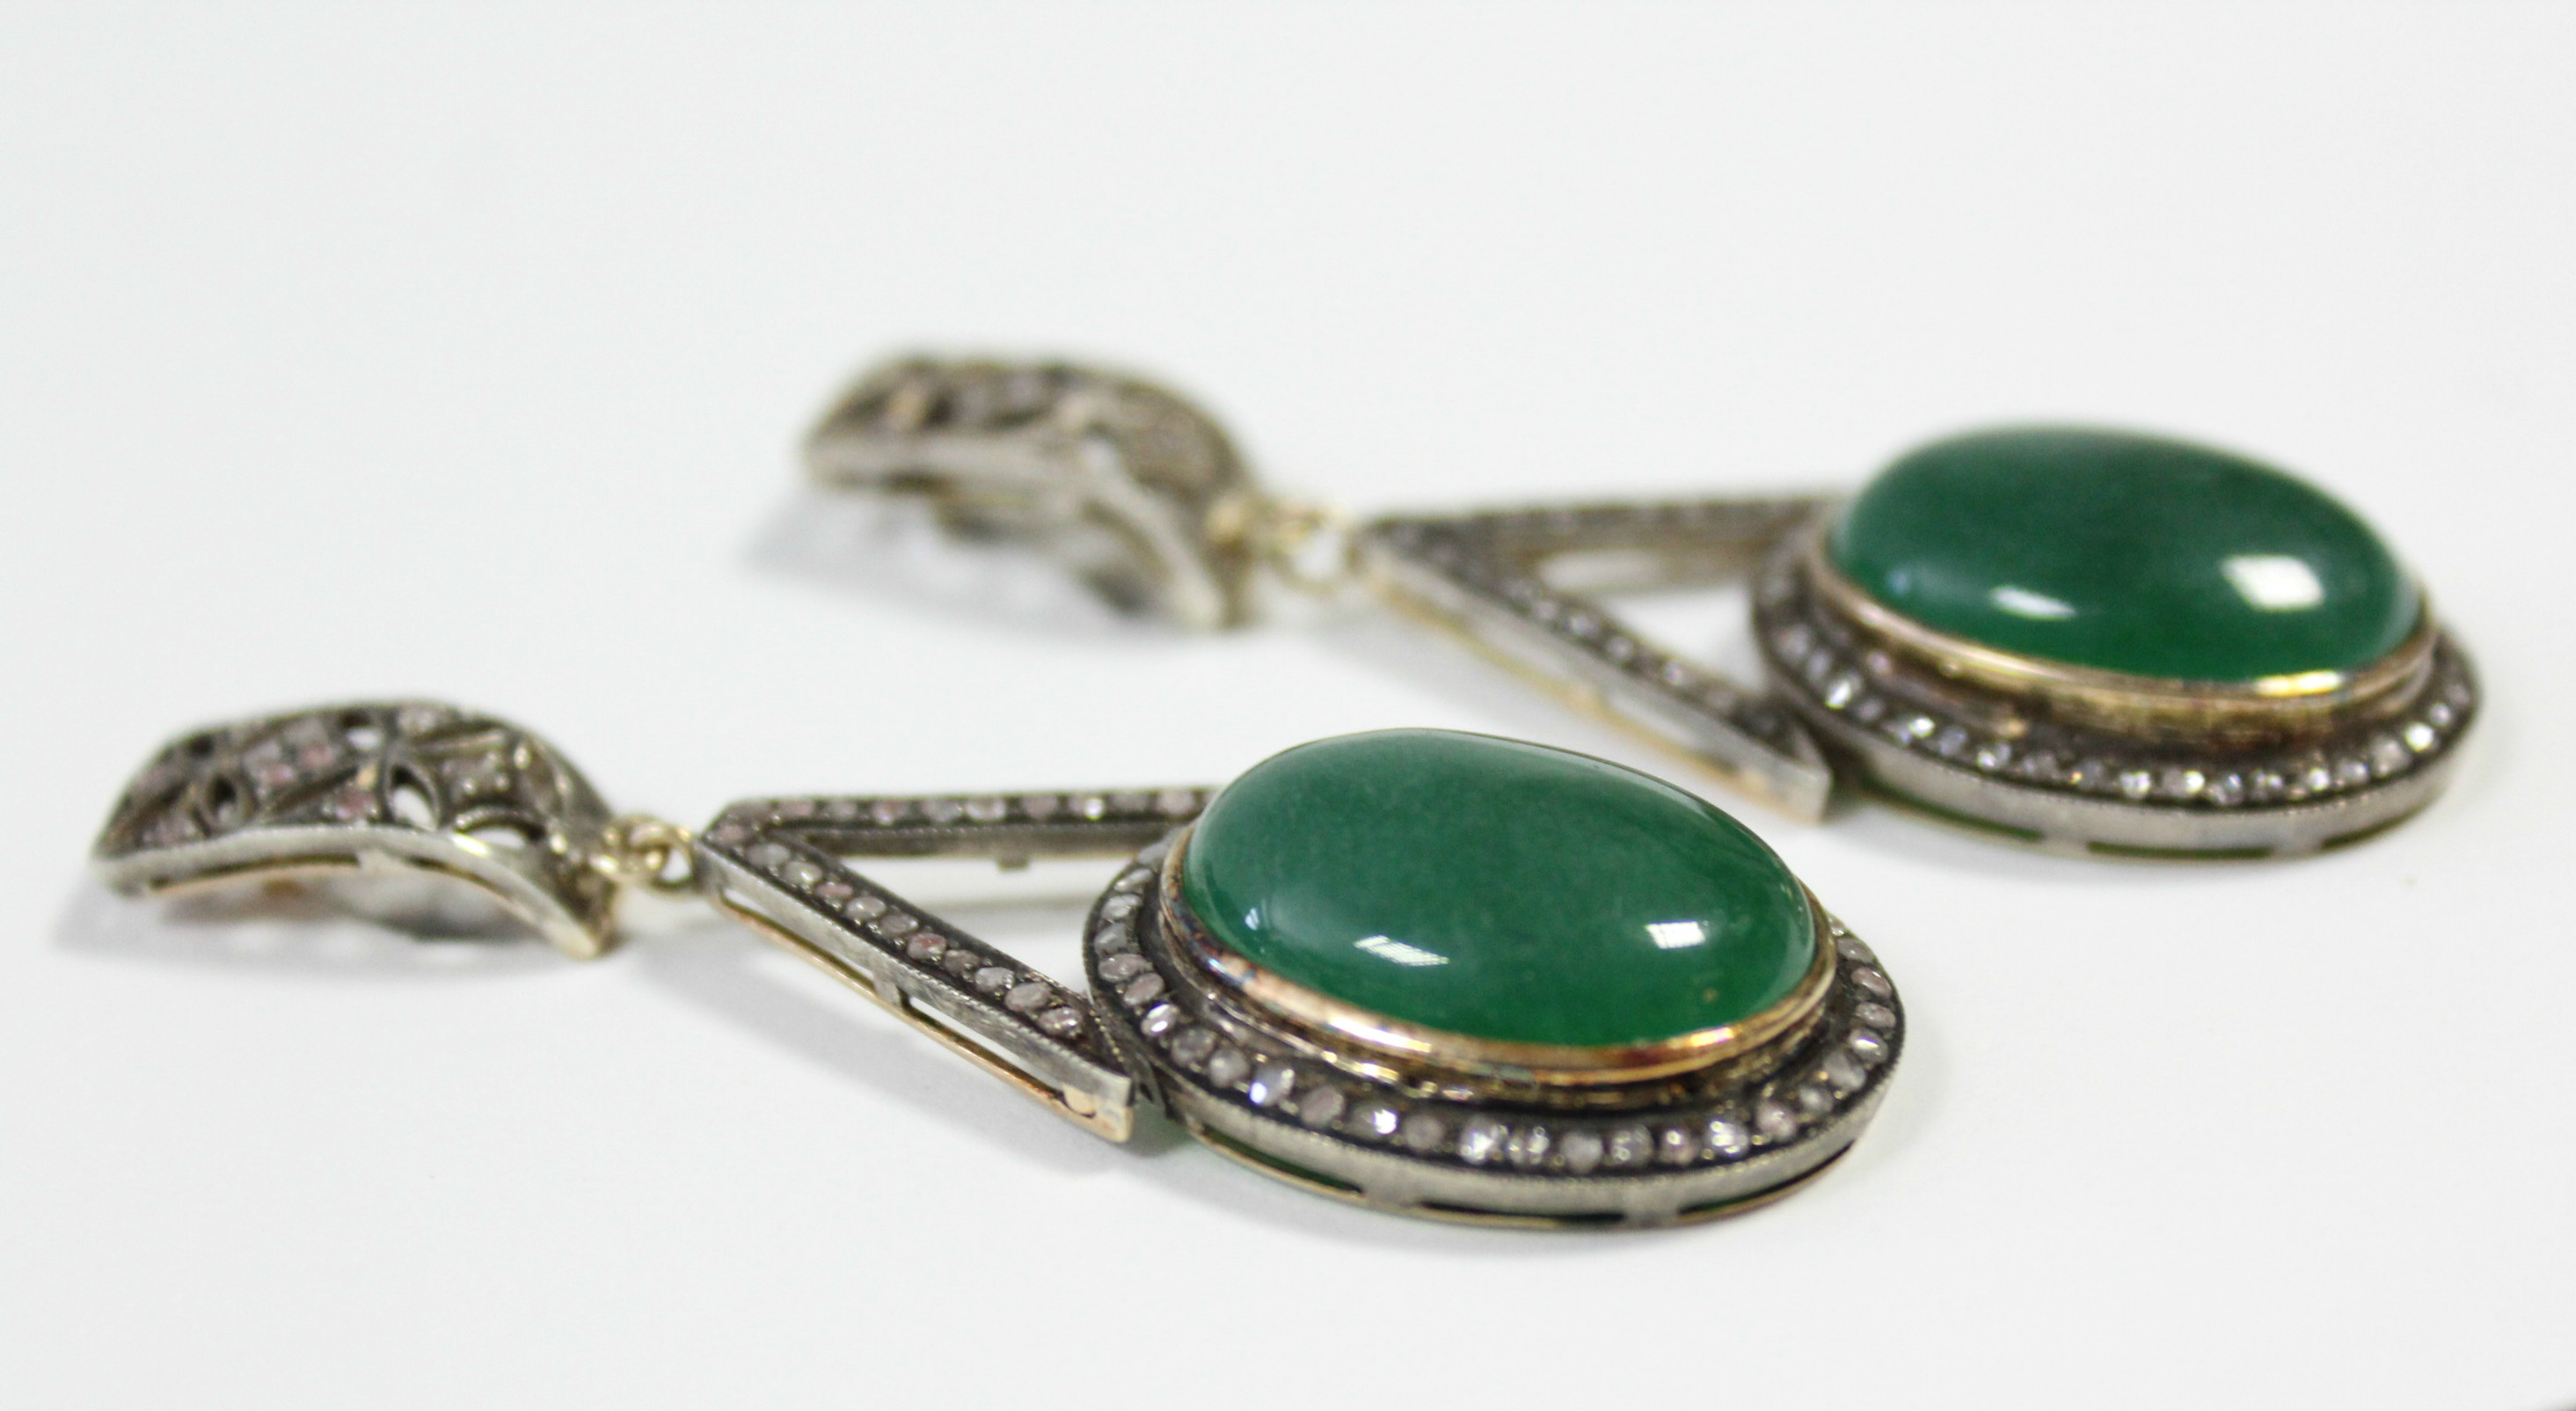 A PAIR OF JADE & DIAMOND PENDANT EARRINGS, each with oval green jade cabochon suspended from an - Image 3 of 6